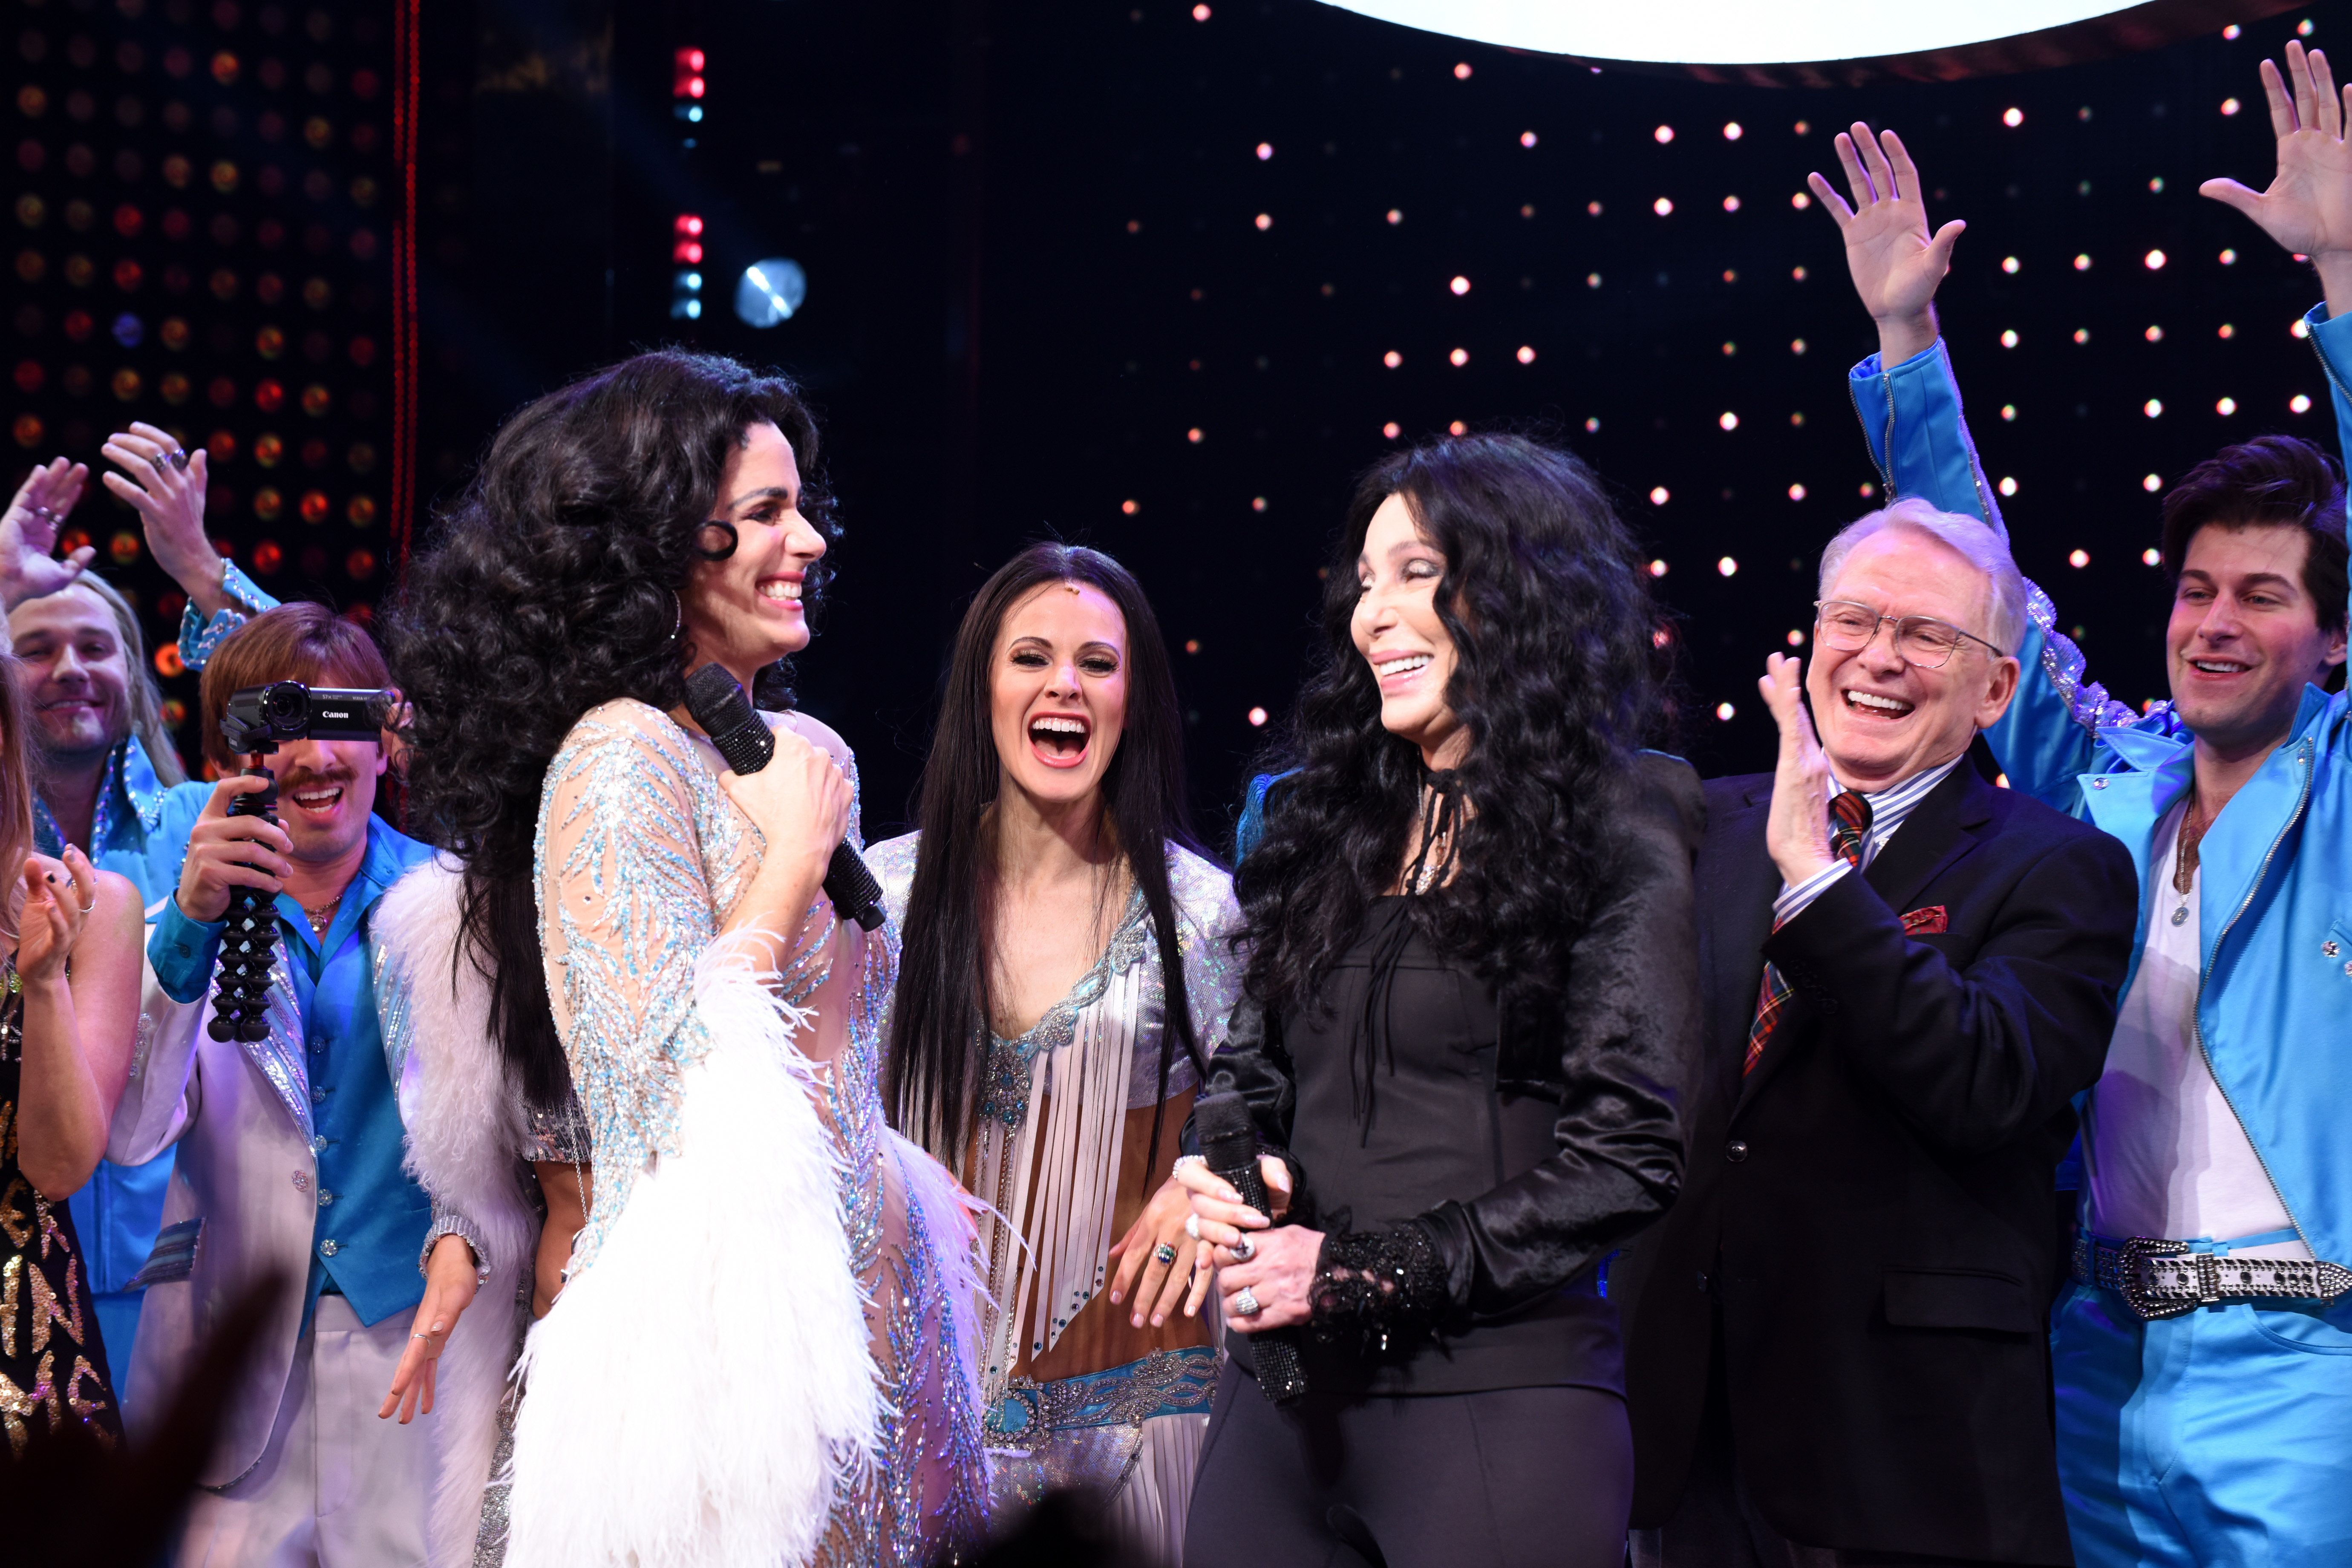 NEW YORK, NEW YORK - DECEMBER 03: Stephanie J. Block (L) and Cher perform onstage with the cast of 'The Cher Show' at 'The Cher Show' Broadway Opening Night at Neil Simon Theatre on December 03, 2018 in New York City. (Photo by Jenny Anderson/Getty Images for The Cher Show )